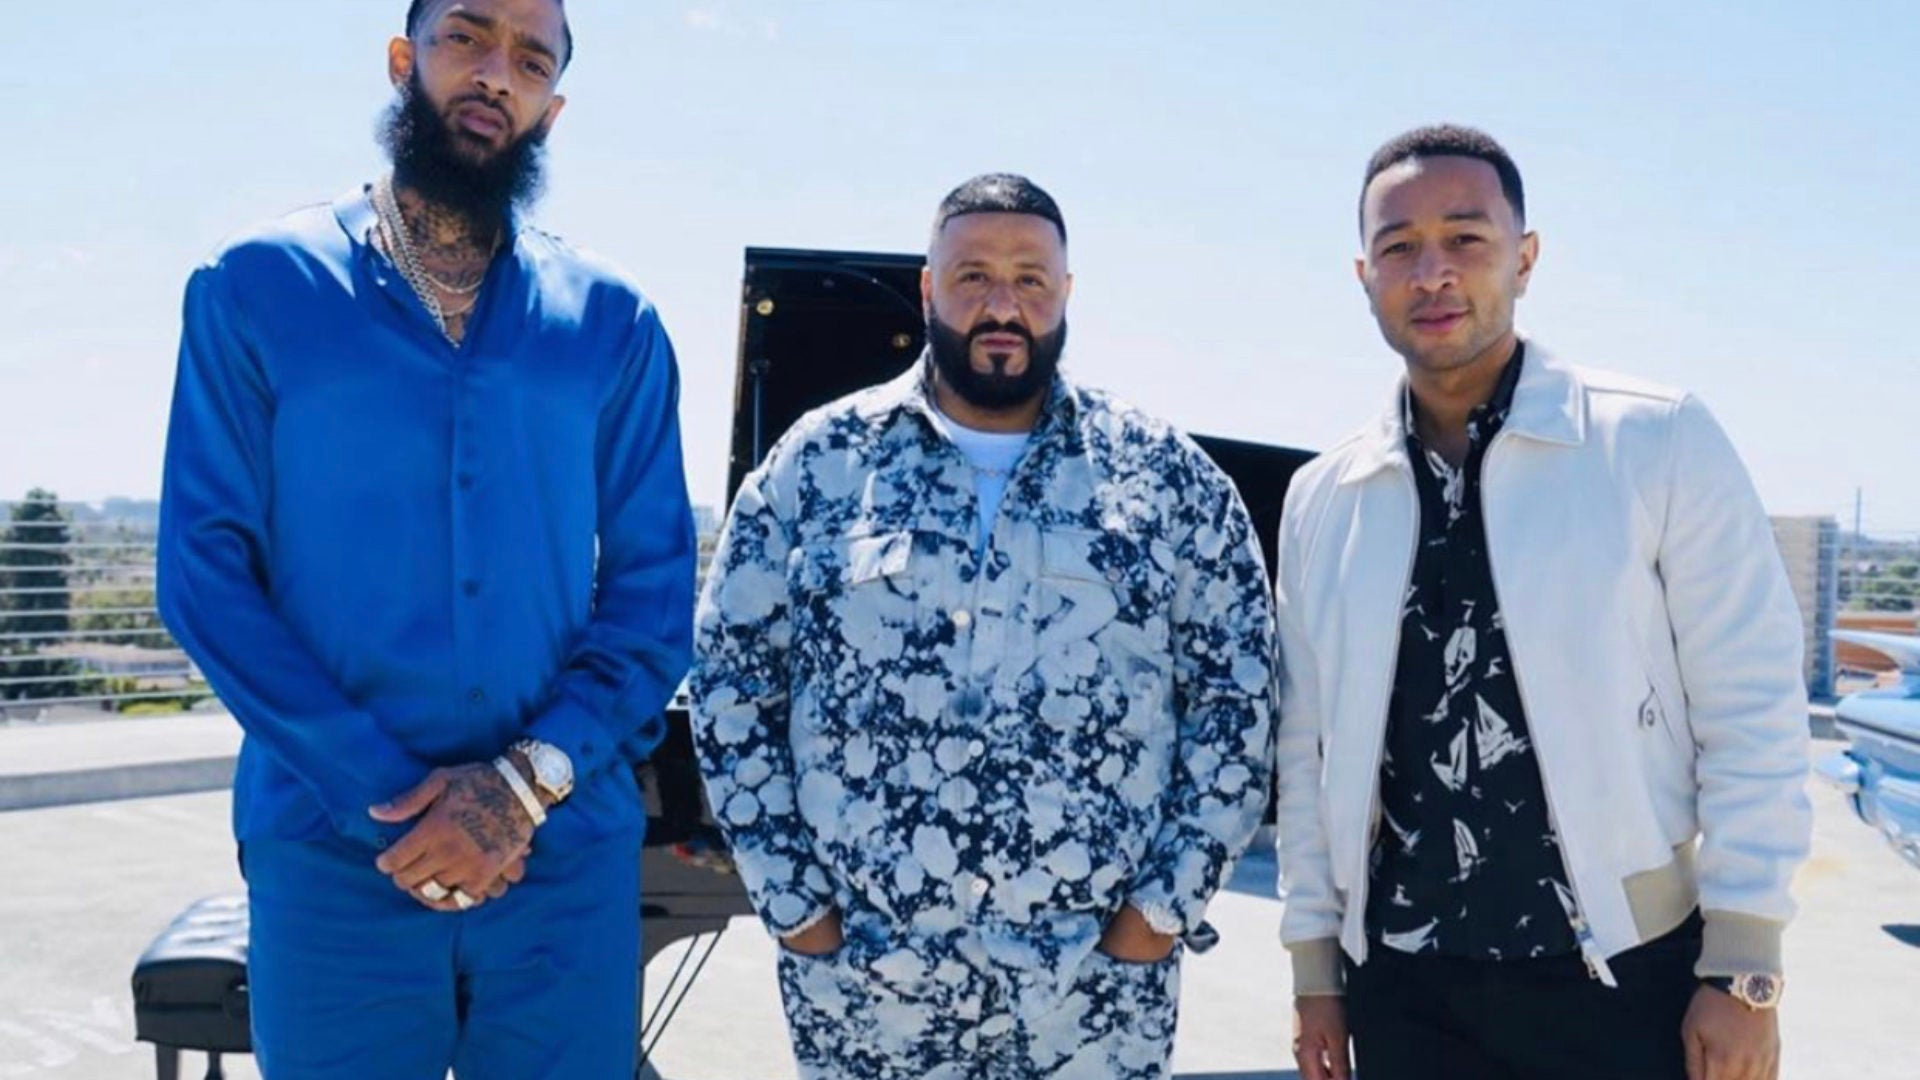 DJ Khaled And John Legend Pay Tribute to Nipsey Hussle on 'Saturday Night Live'